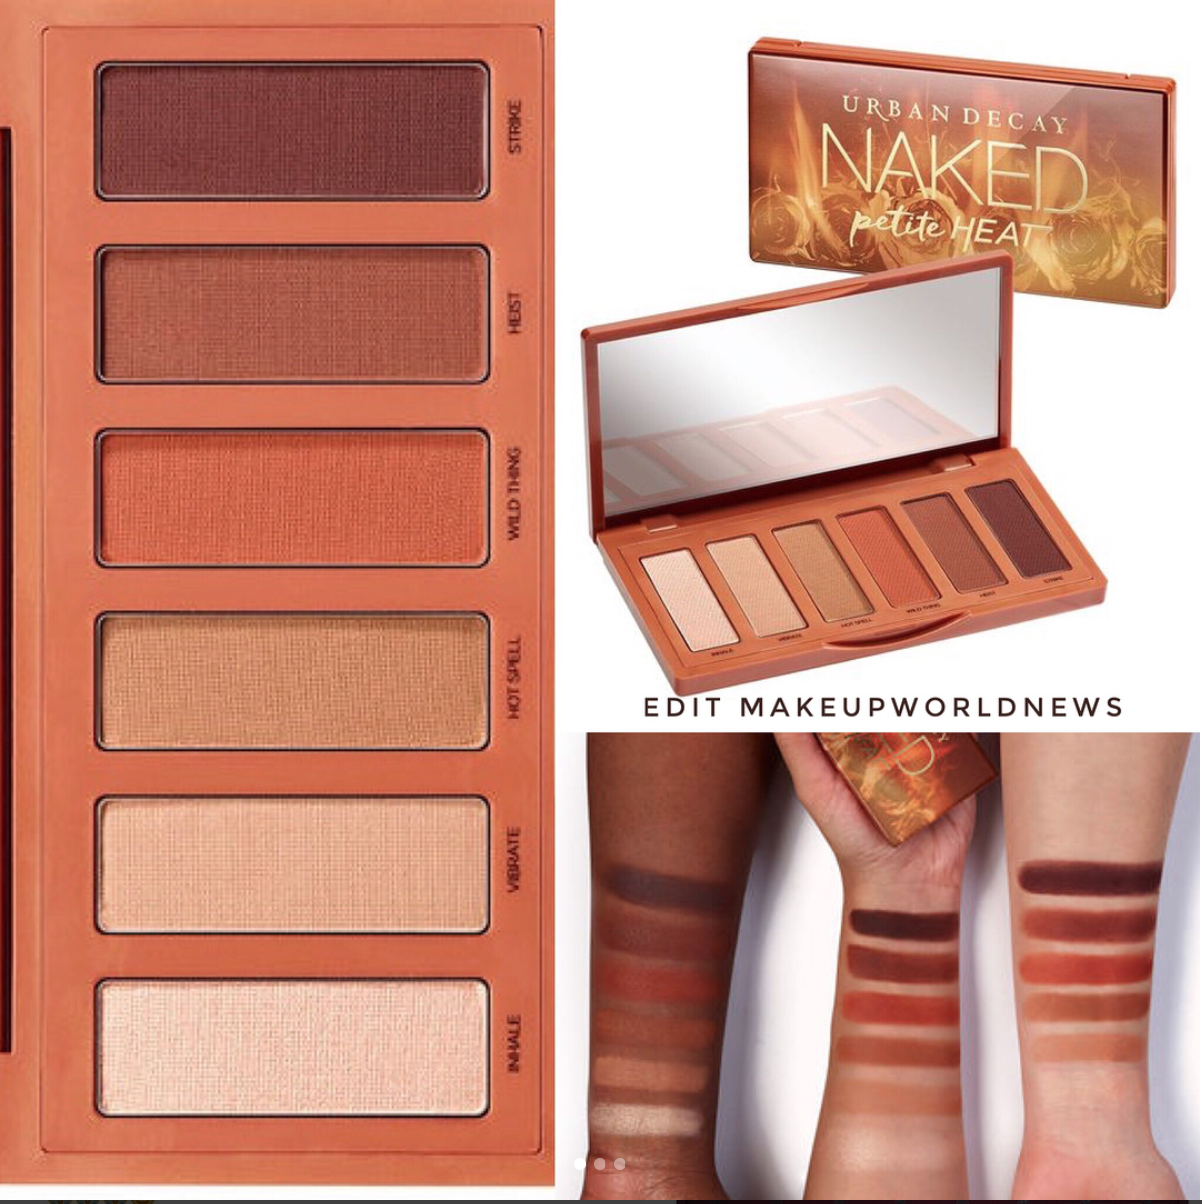 Urban Decay Naked Heat Mini palette Petite Heat Swatches